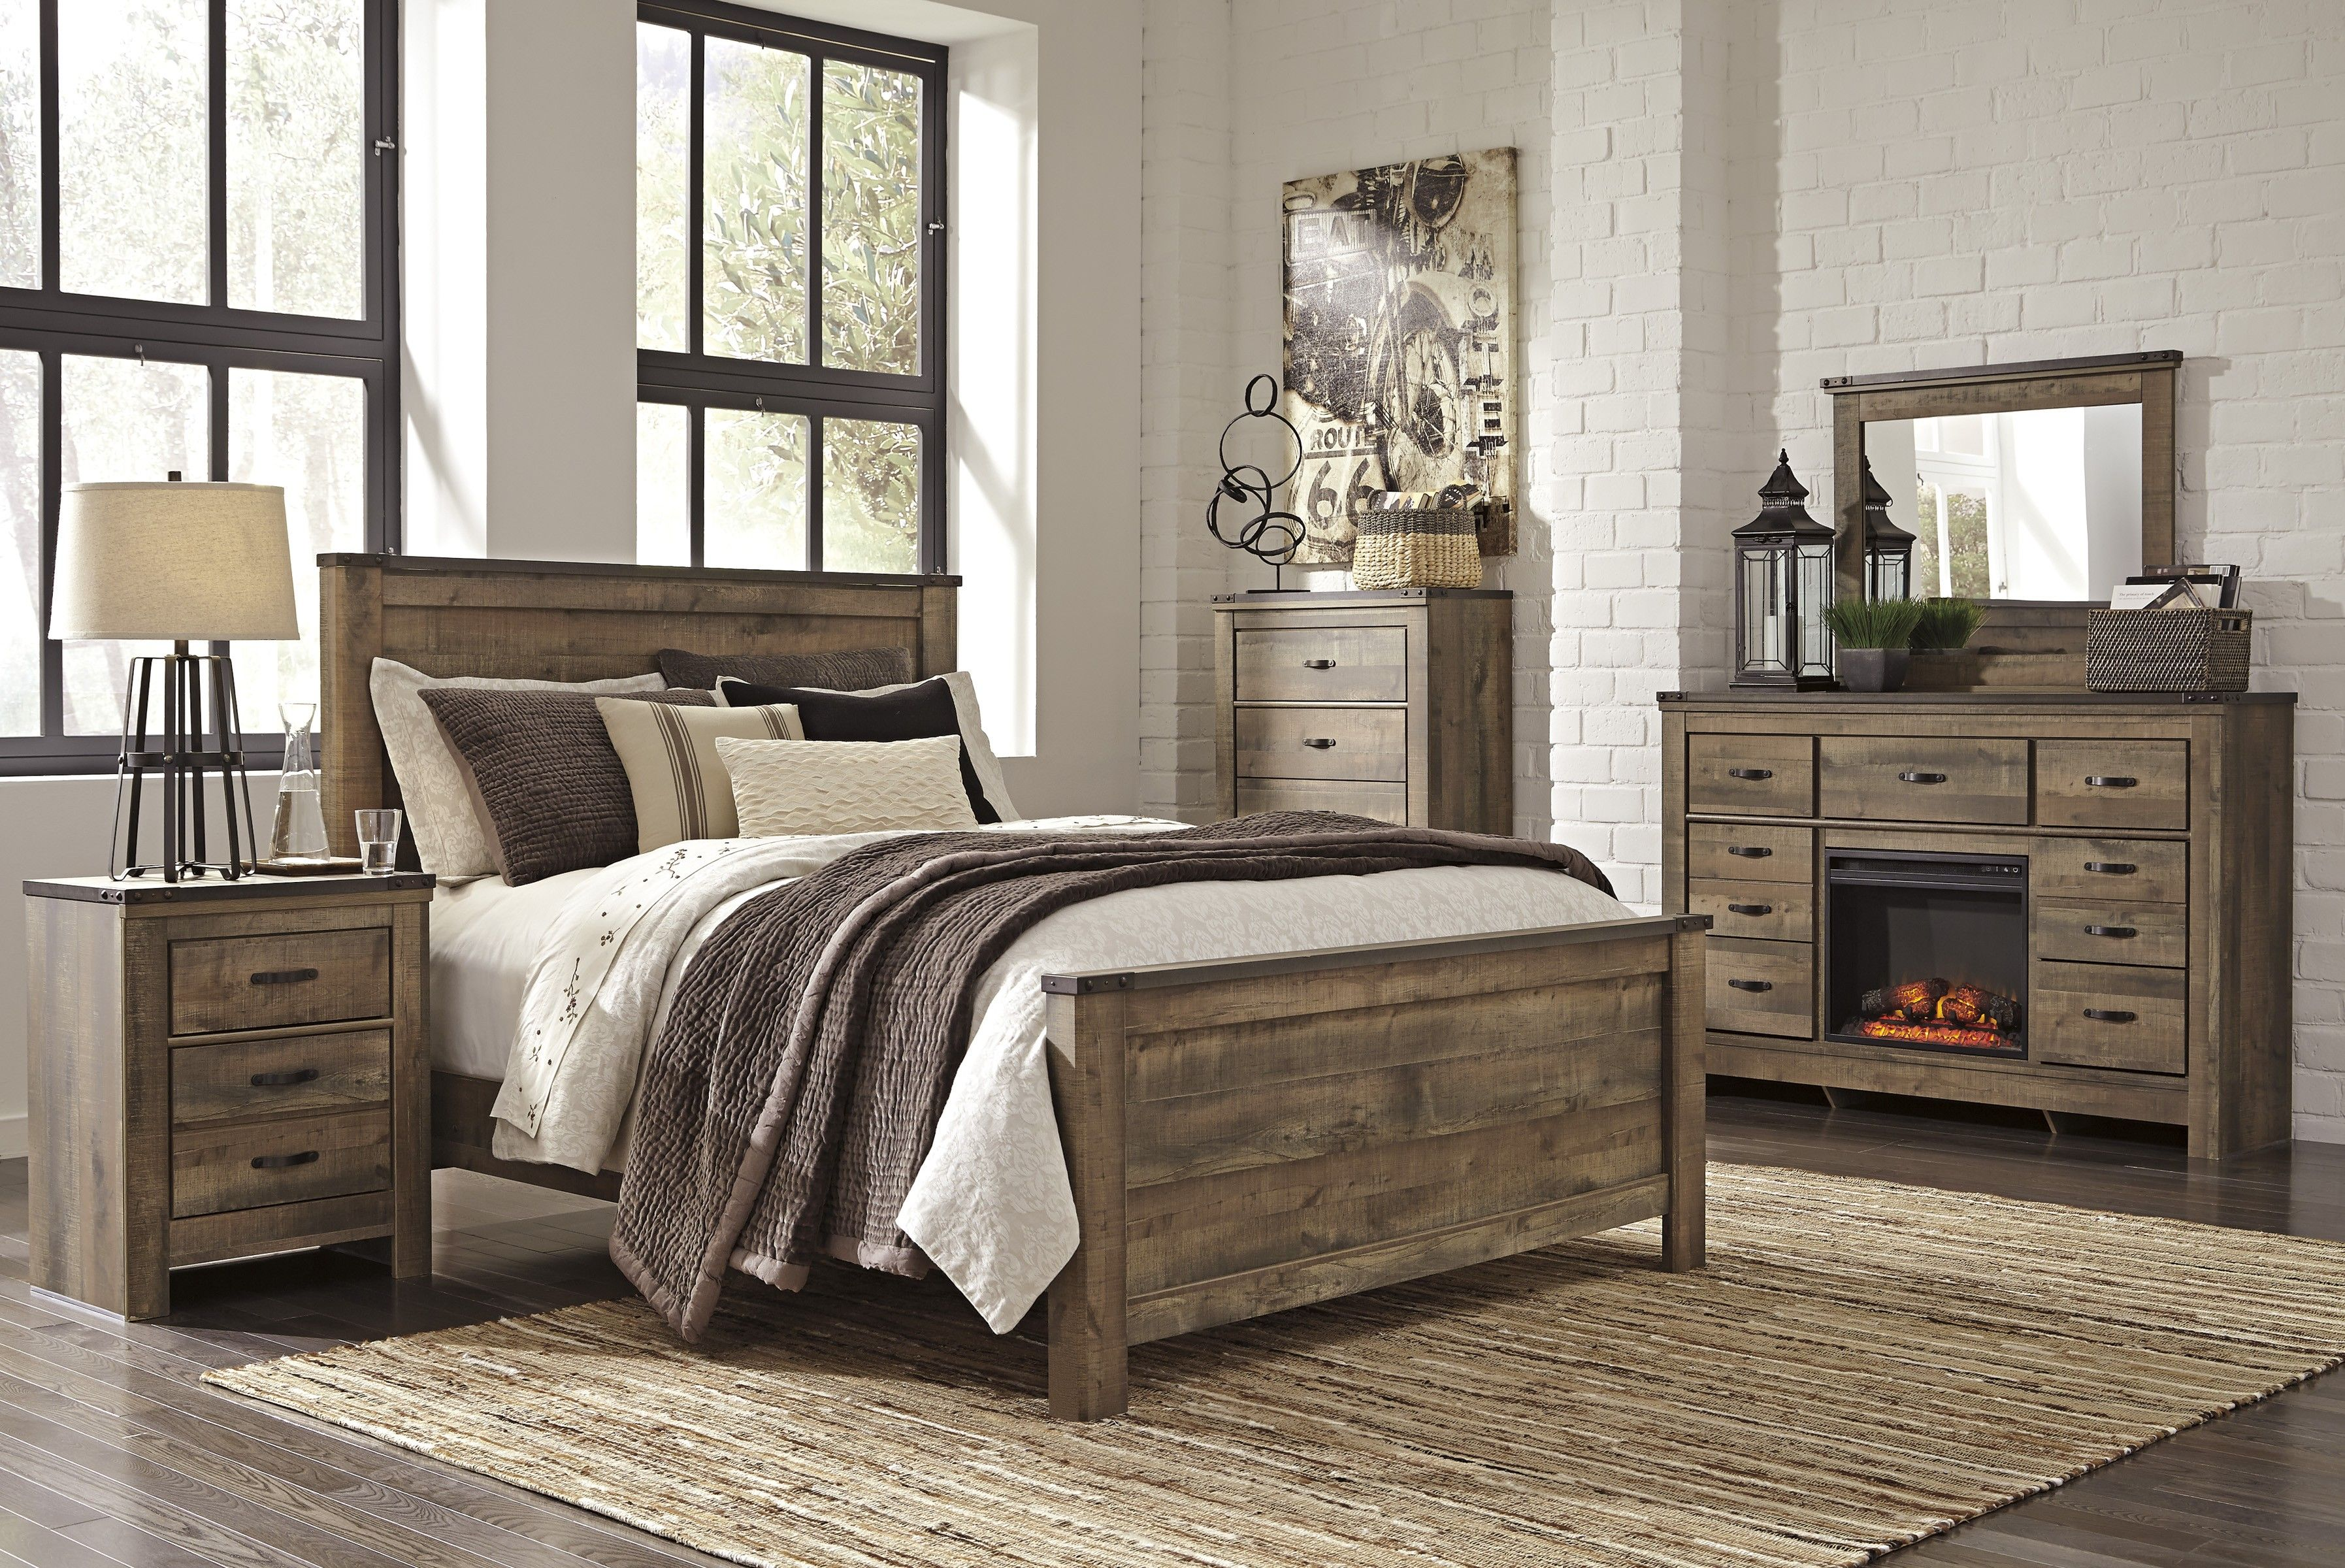 Trinell Panel Bed Queen Bedroom Sets Master Set Farmhouse Furniture